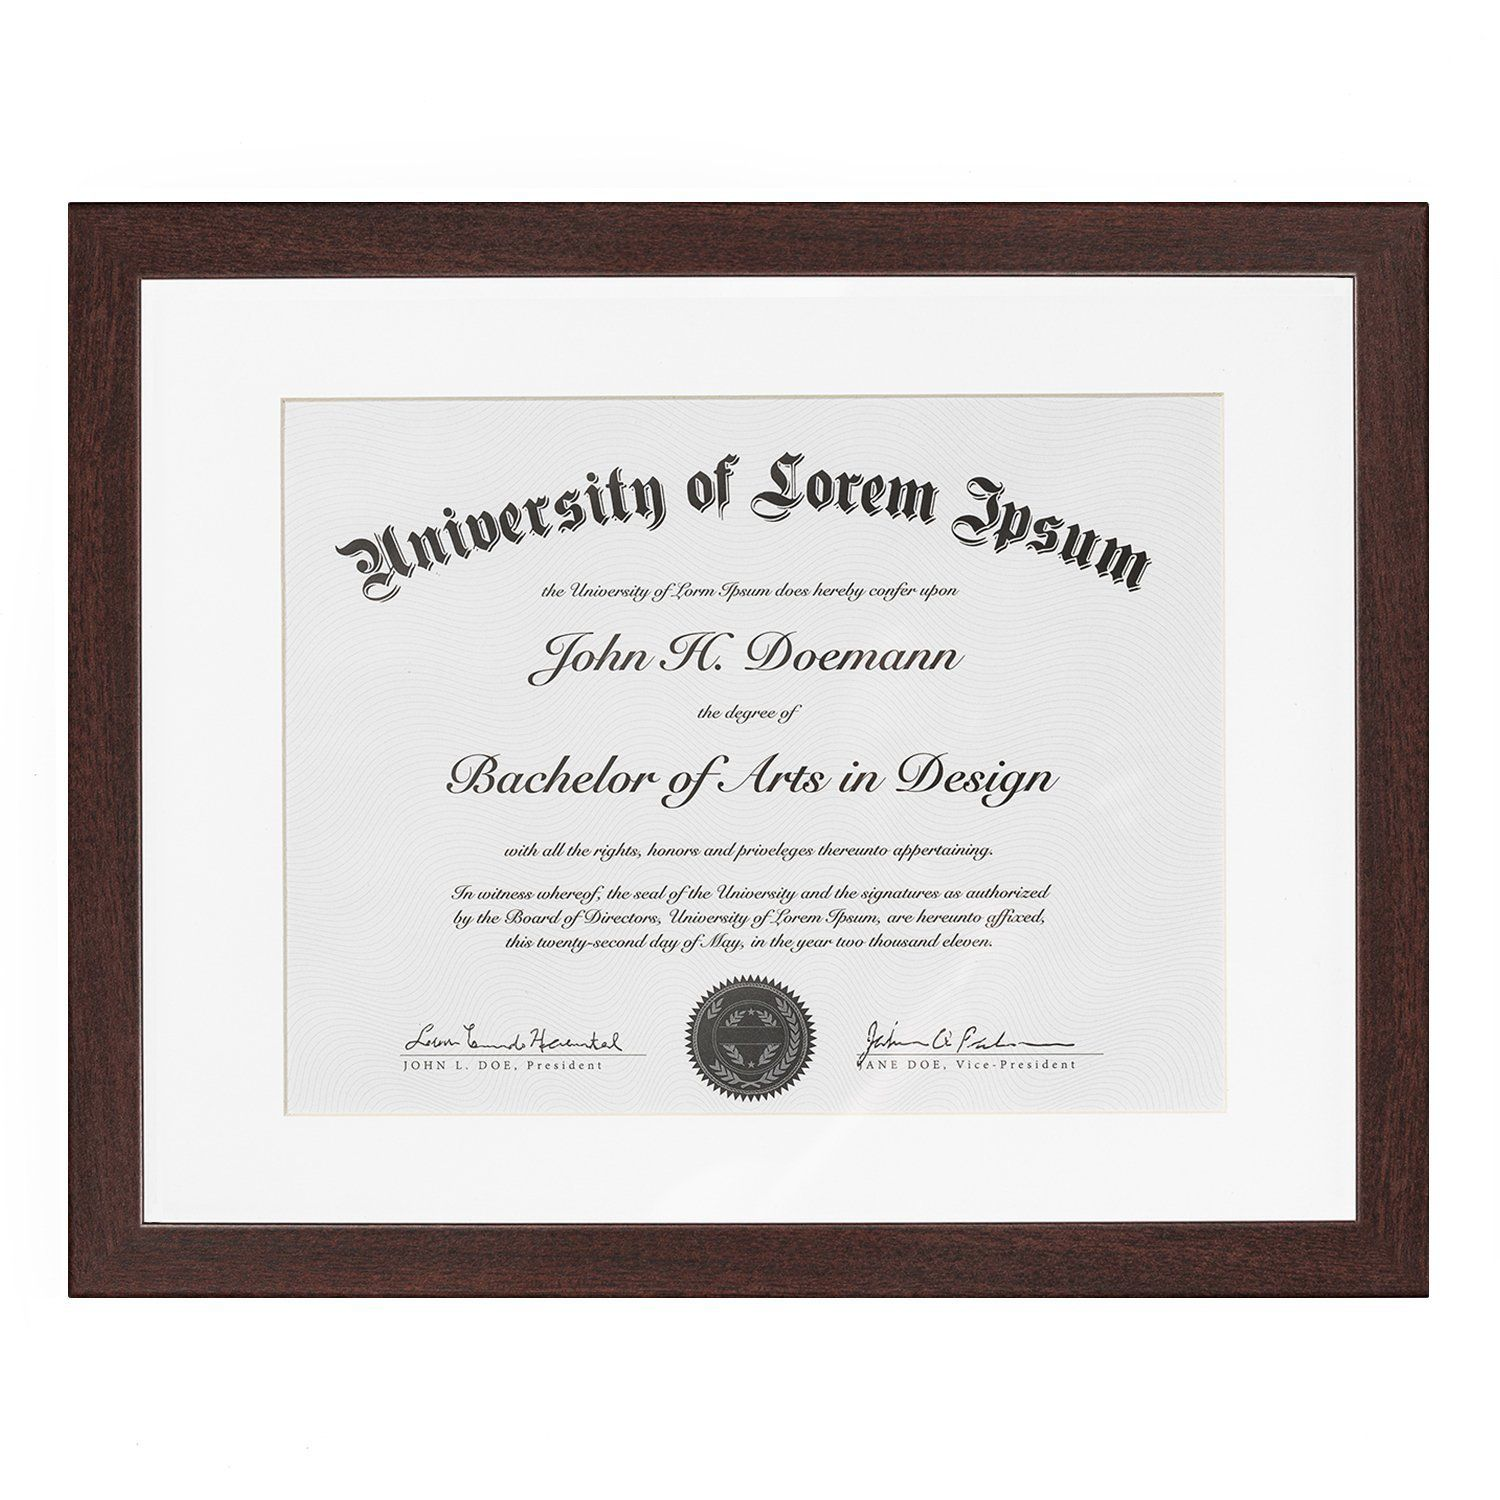 Mahogany Document Frame Made To Display Documents Sized 8 5 X 11 Inch With Mat And 11 X 14 Inch Without Mat Document Frame Certi Document Frame Diploma Frame Frame Display